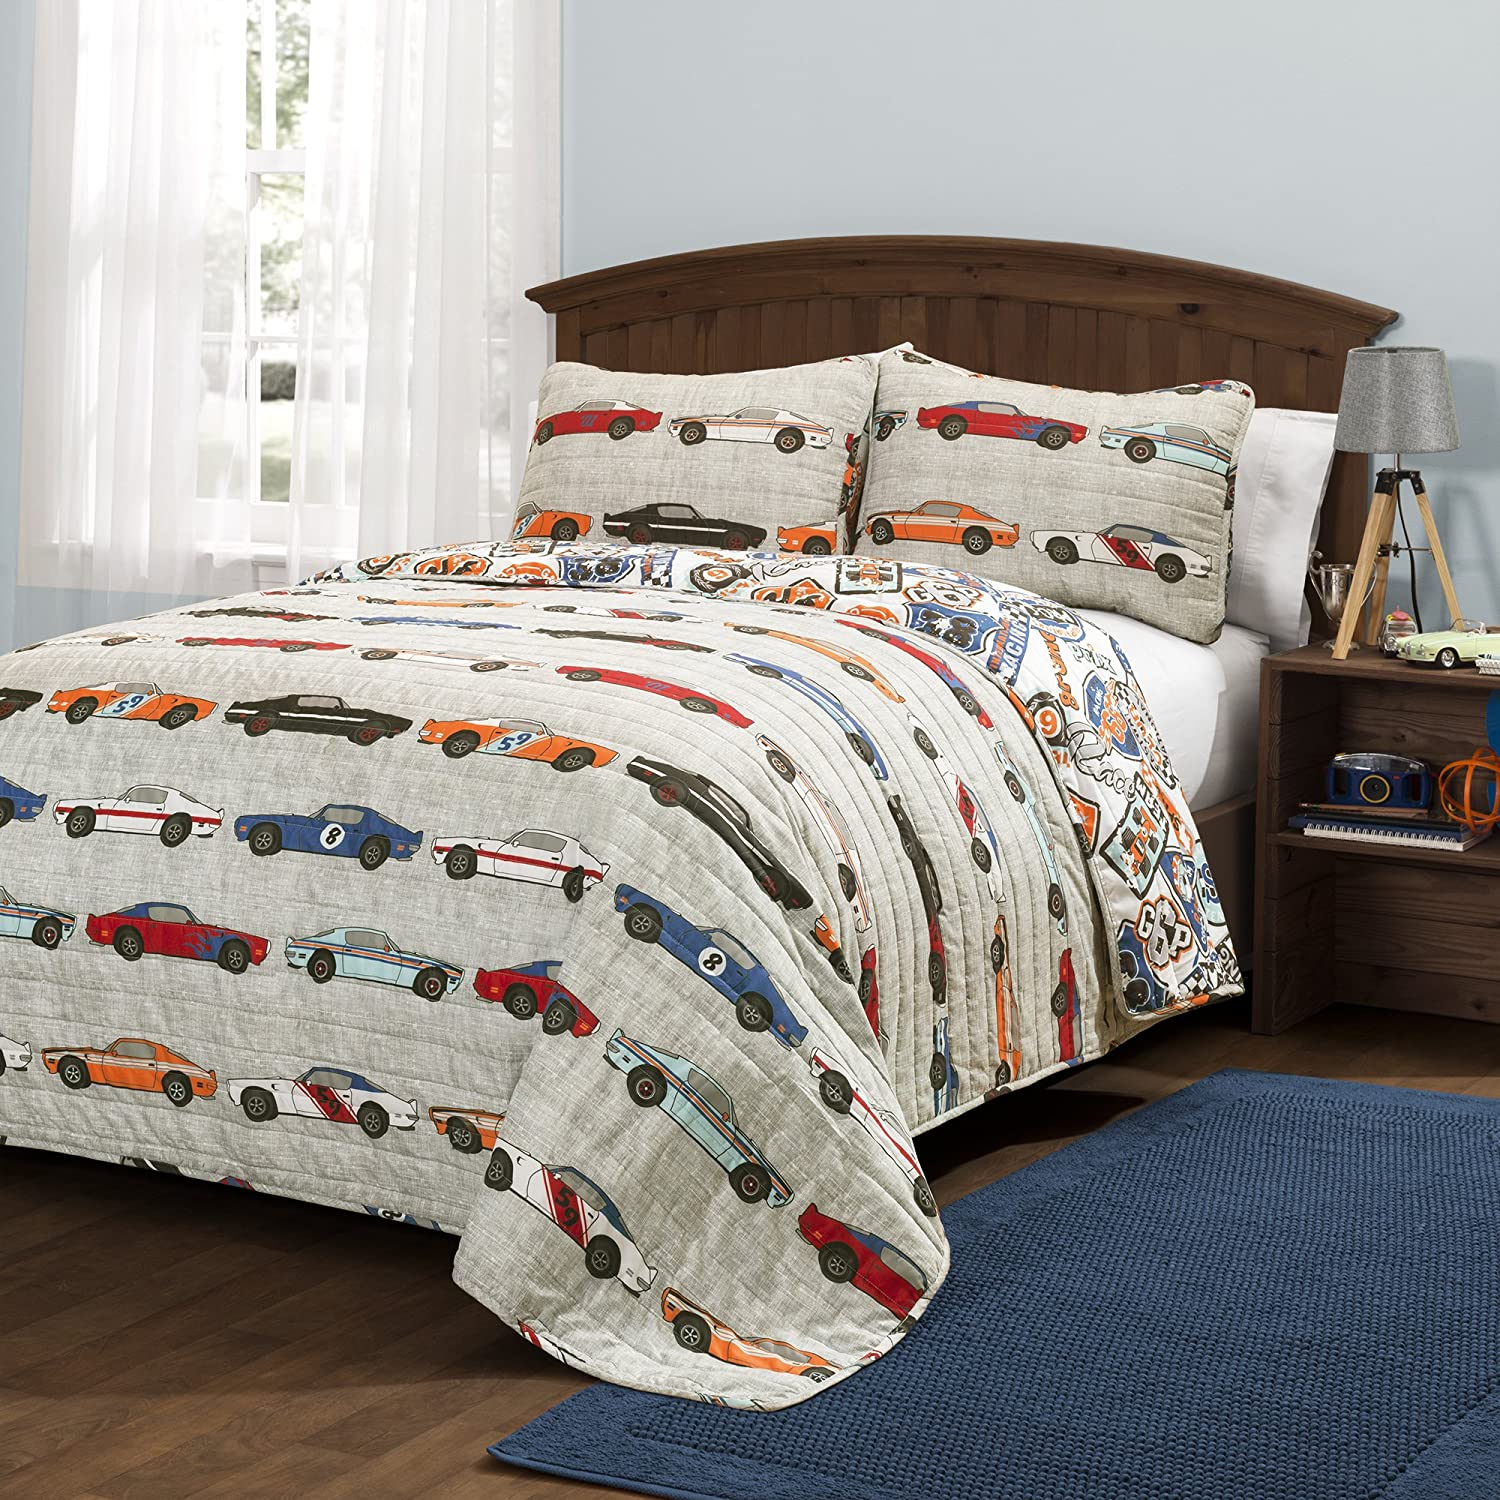 Lush Decor 16T000545 2 Piece Race Cars Quilt Set, Full/Queen, Blue/Orange Triangle Home Fashions